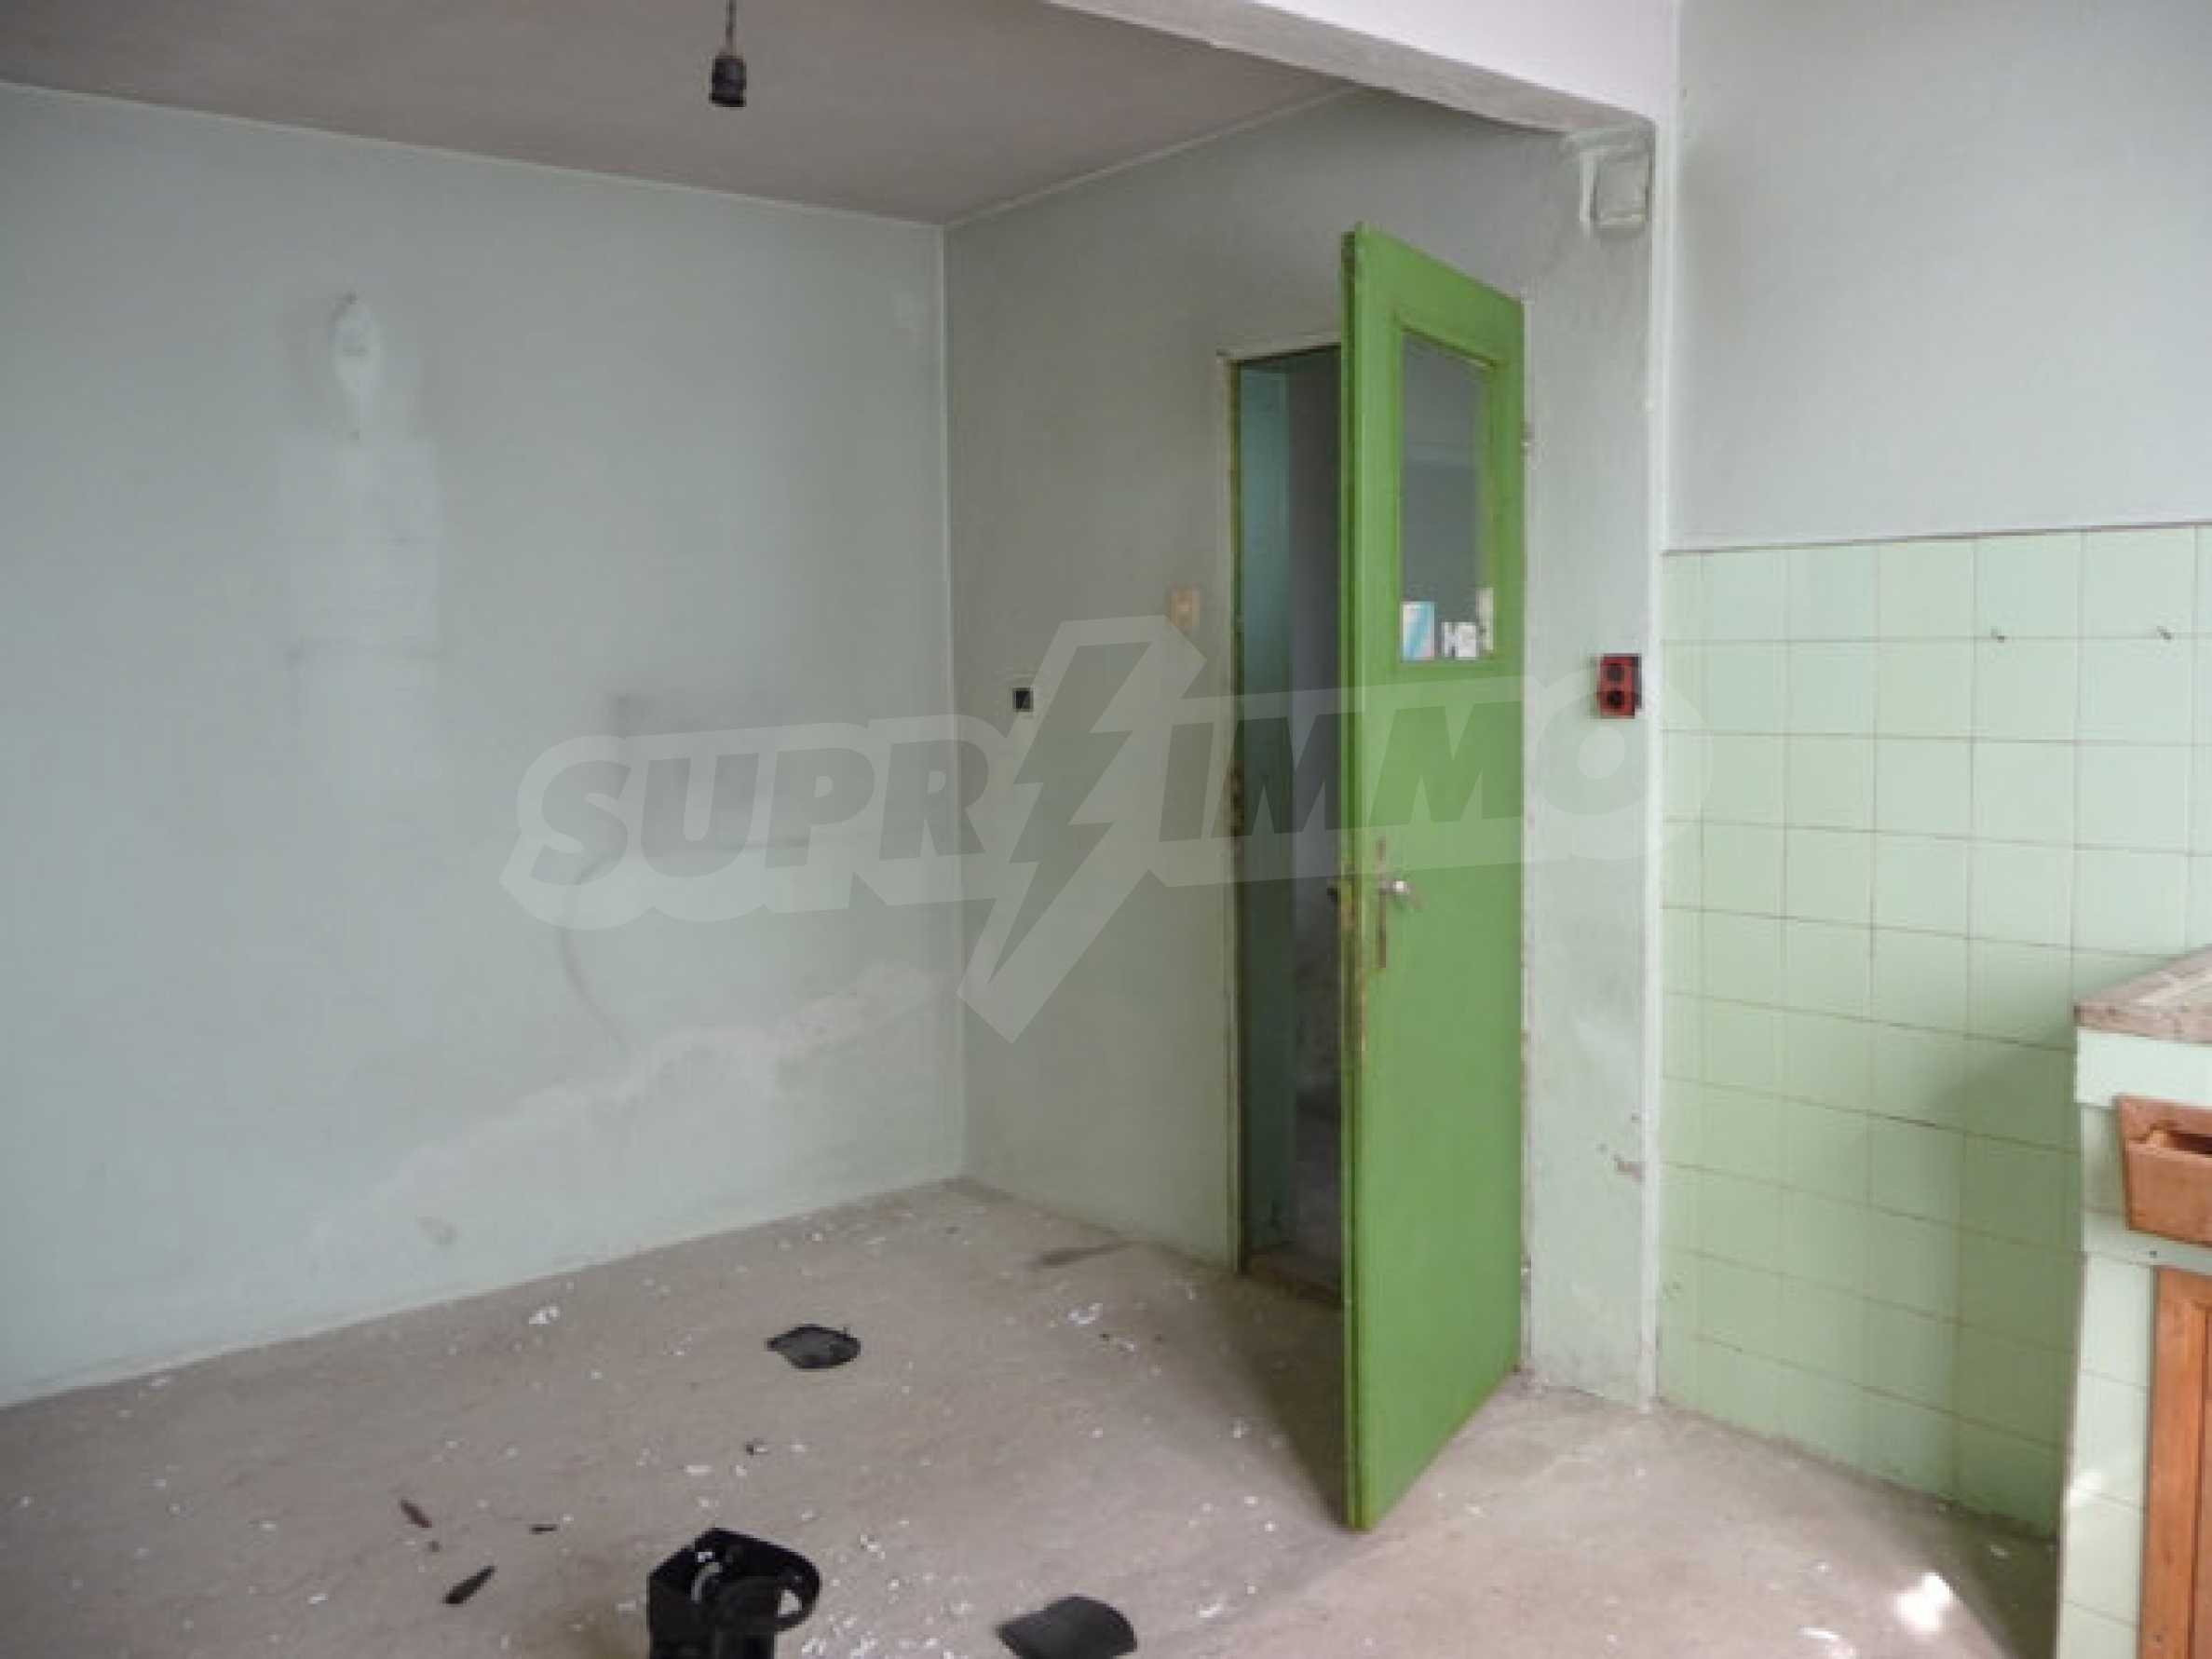 House with shop in Byala (Varna) 3